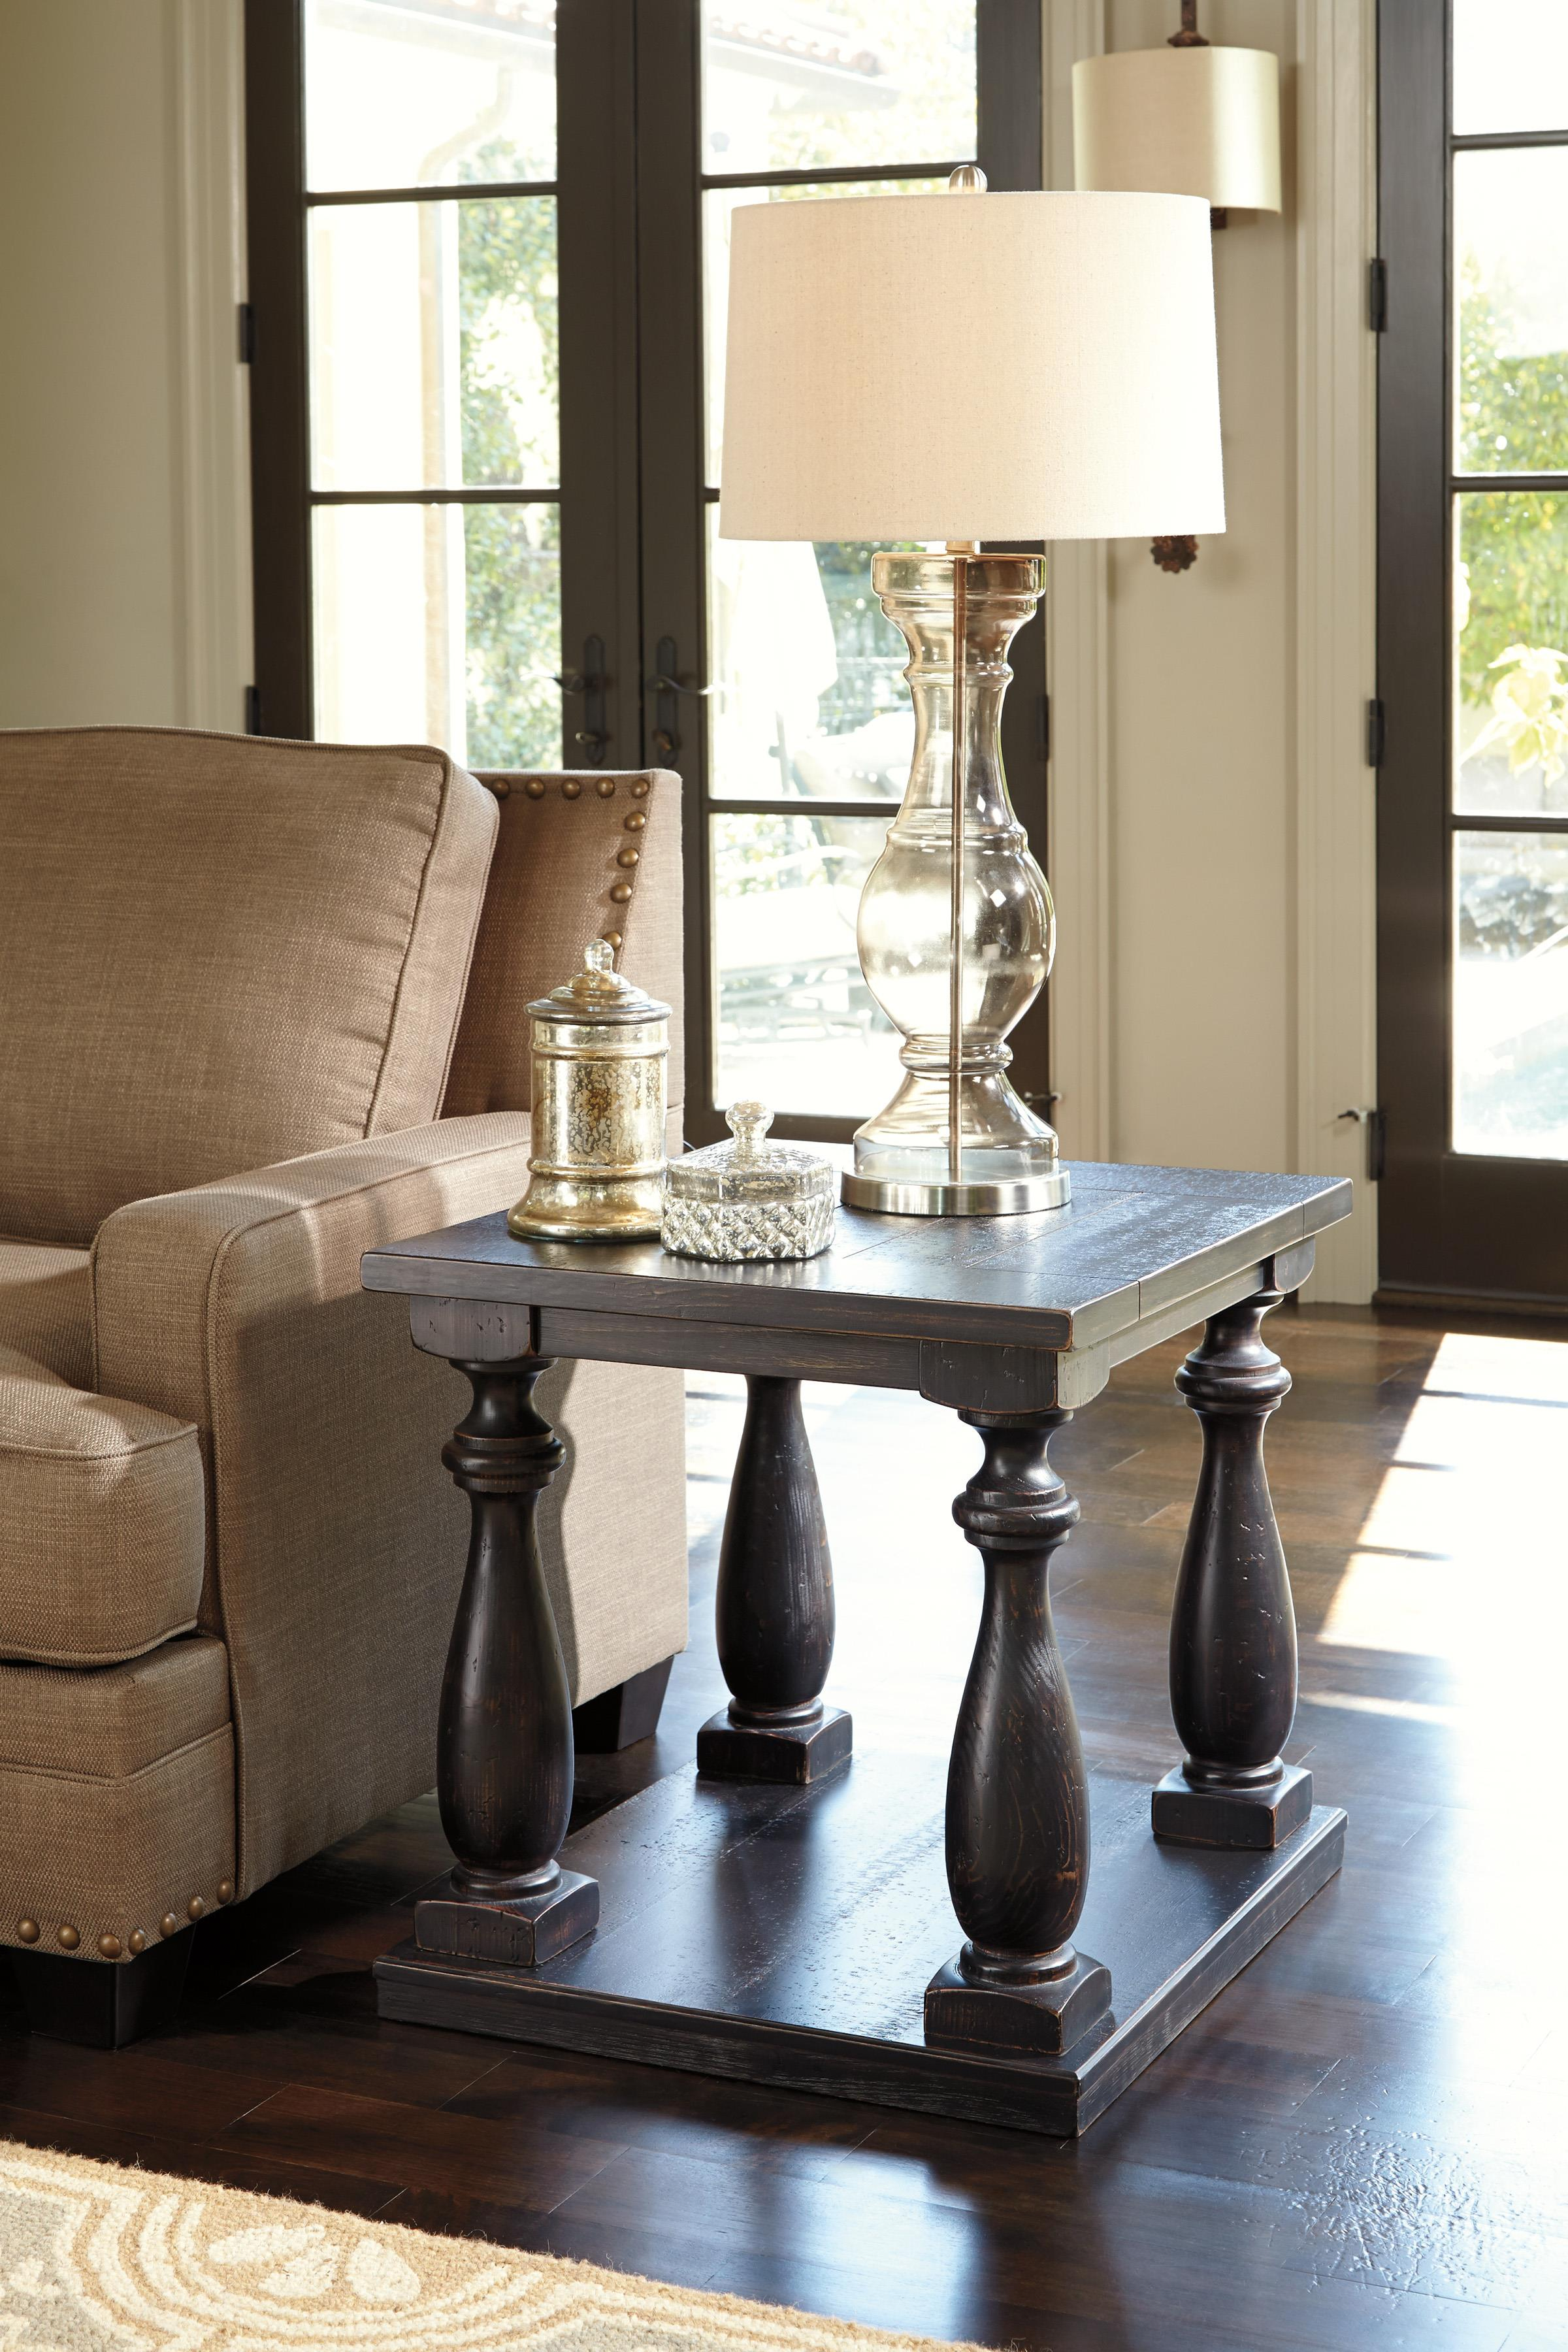 Rustic Cherry Rectangular Table Formal Dining Room Set: Signature Design By Ashley Mallacar Rustic Black Finish